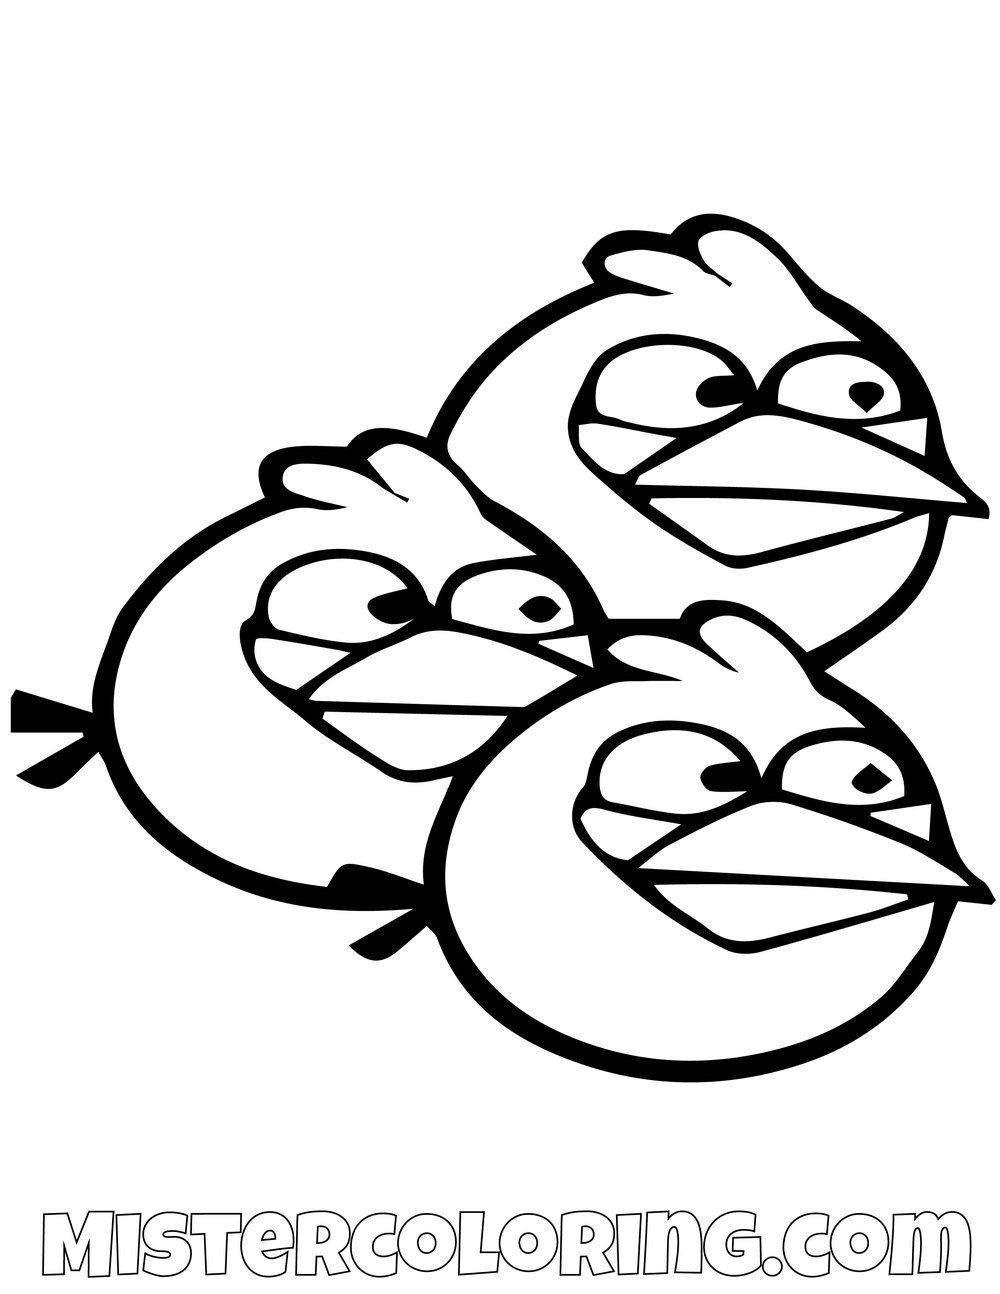 Angry Birds Coloring Sheet The Blues Simple Angry Birds Coloring Pages Bird Coloring Pages Cartoon Coloring Pages Bear Coloring Pages [ 1294 x 1000 Pixel ]